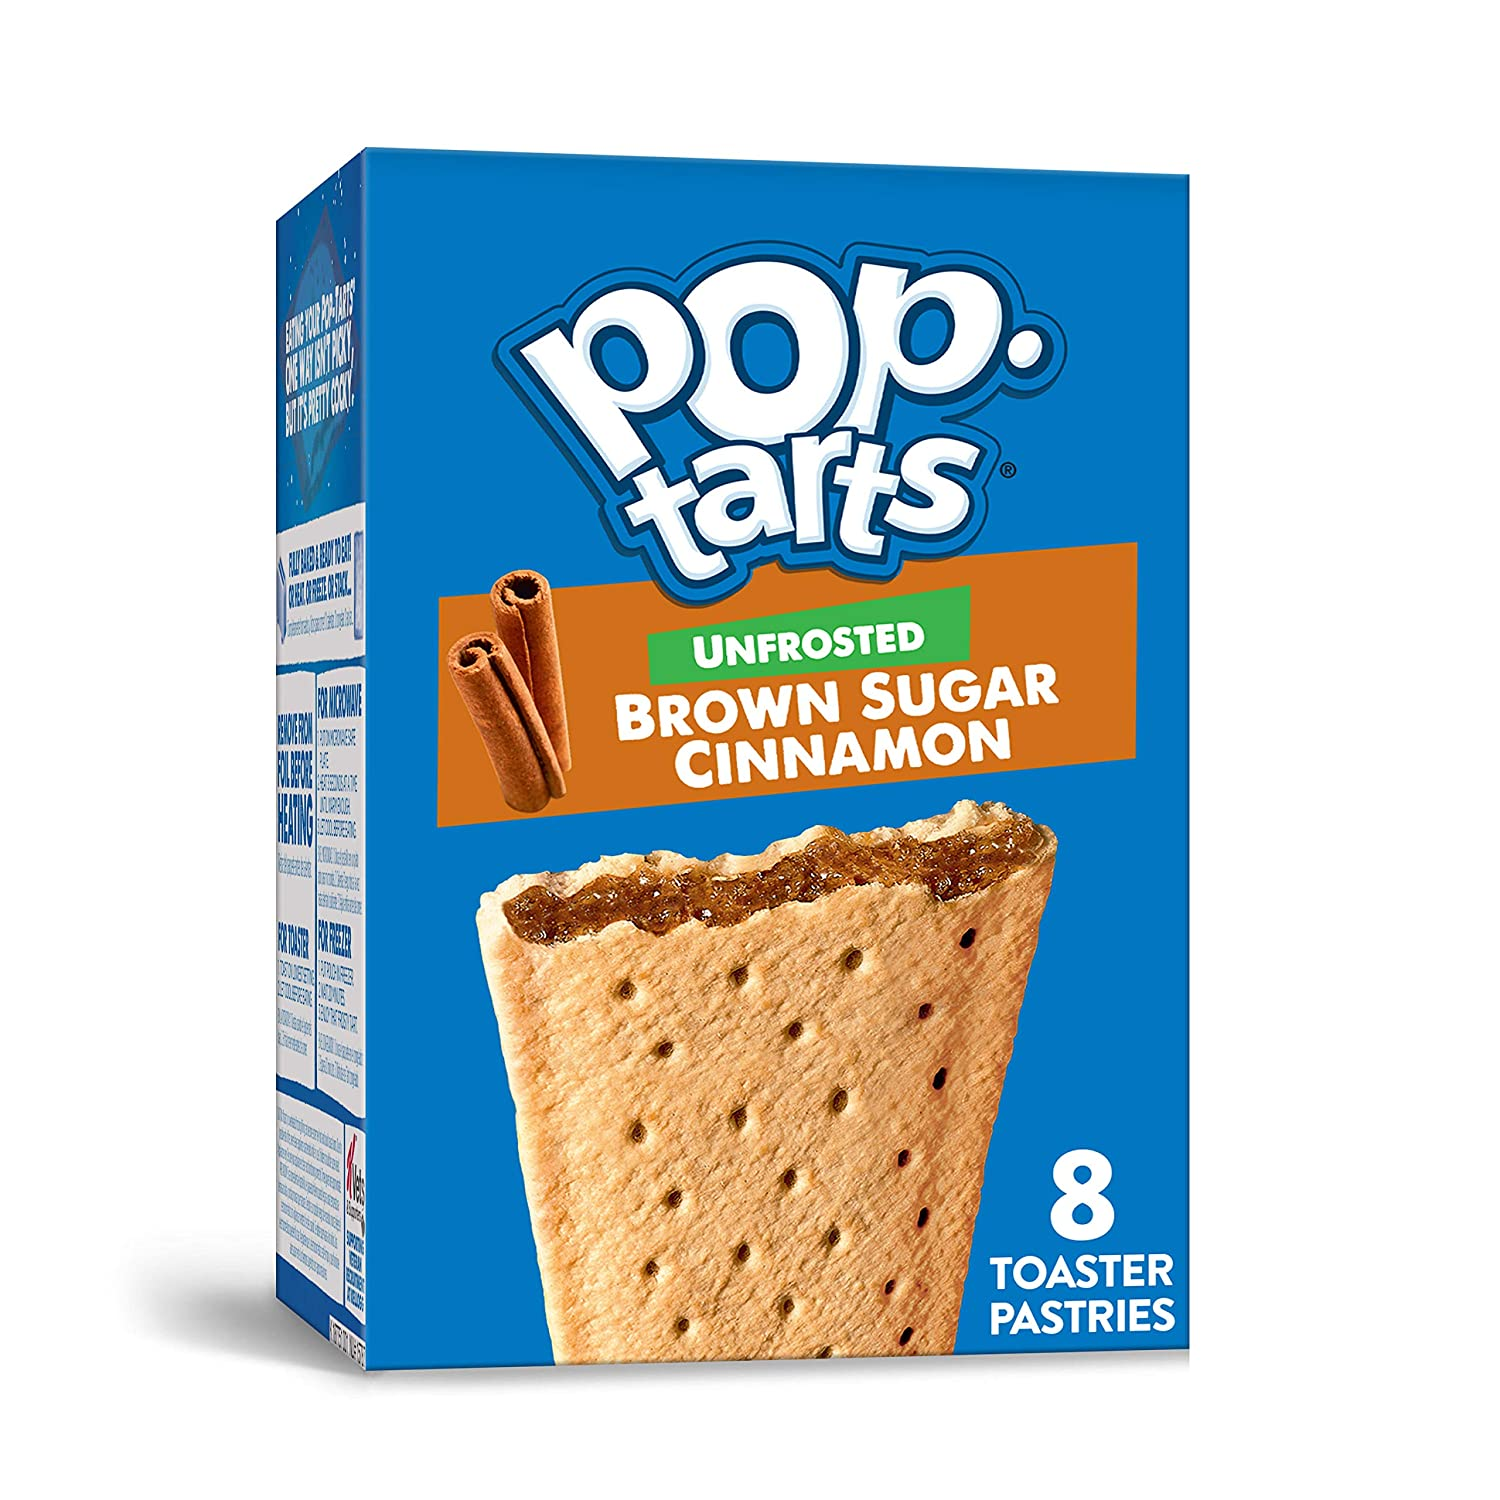 Pop-Tarts, Breakfast Toaster Pastries, Unfrosted Brown Sugar Cinnamon, Proudly Baked in the USA, 13.5oz Box (1 Pack 8 Count)